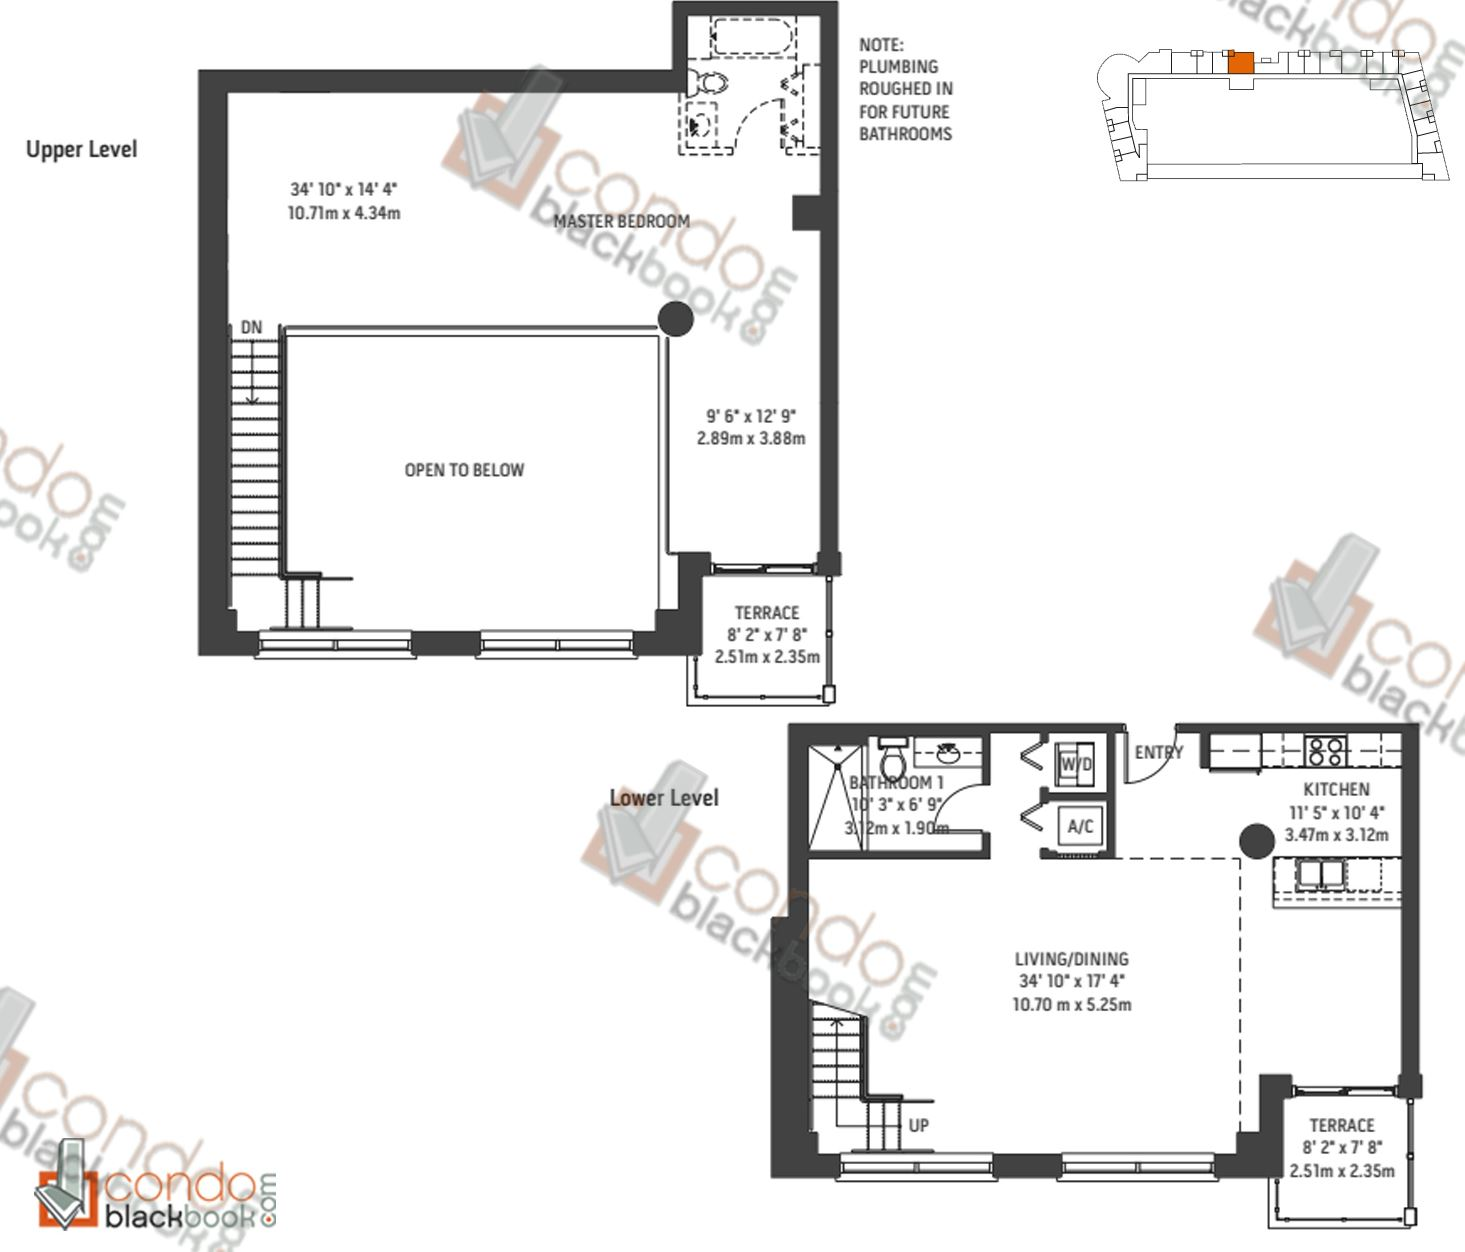 Floor plan for Midblock Condominium Midtown Miami, model Unit L5, line 05, 0/1 bedrooms, 1,664 sq ft